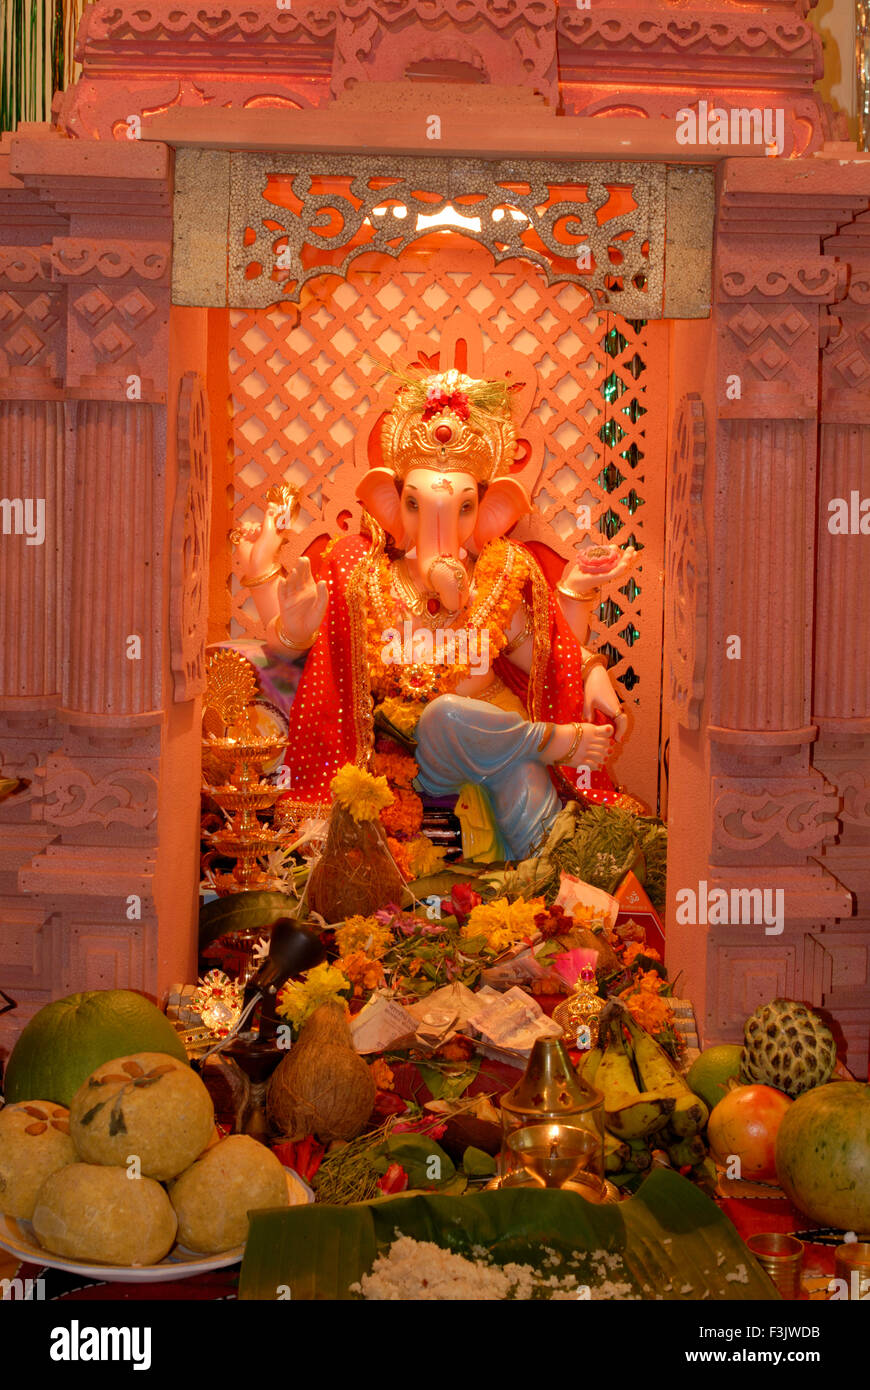 Idol Lord Ganesh Decoration Fruits Flowers Worship Ganapati Festival Home  Elephant Head God Of Hindu Mumbai Maharashtra India